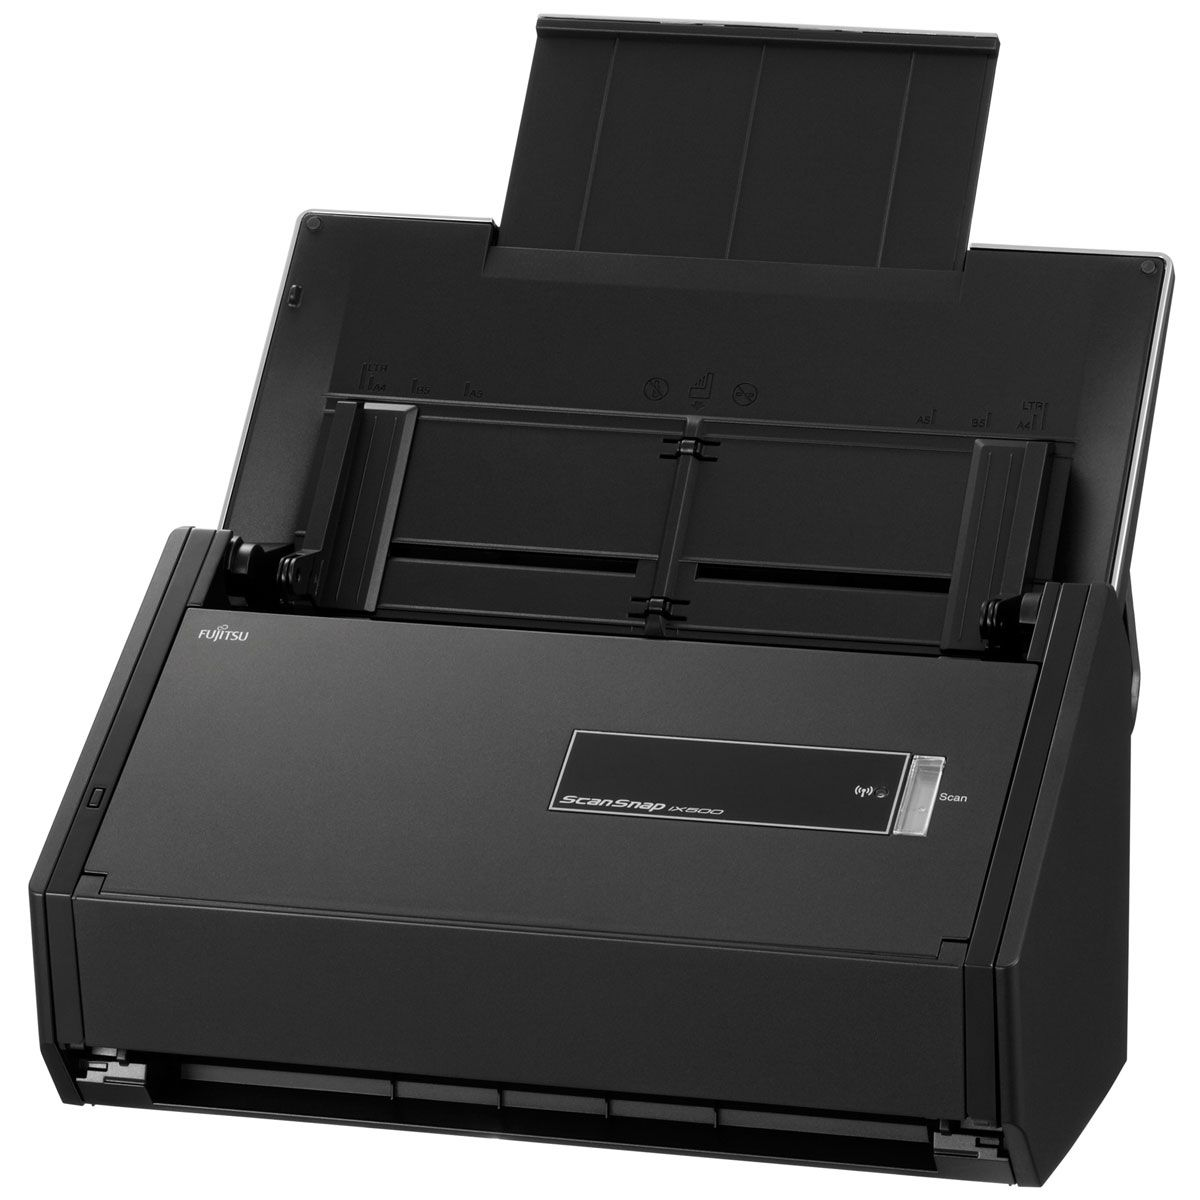 Scanner à défilement FUJITSU ScanSnap iX500 Nuance Power